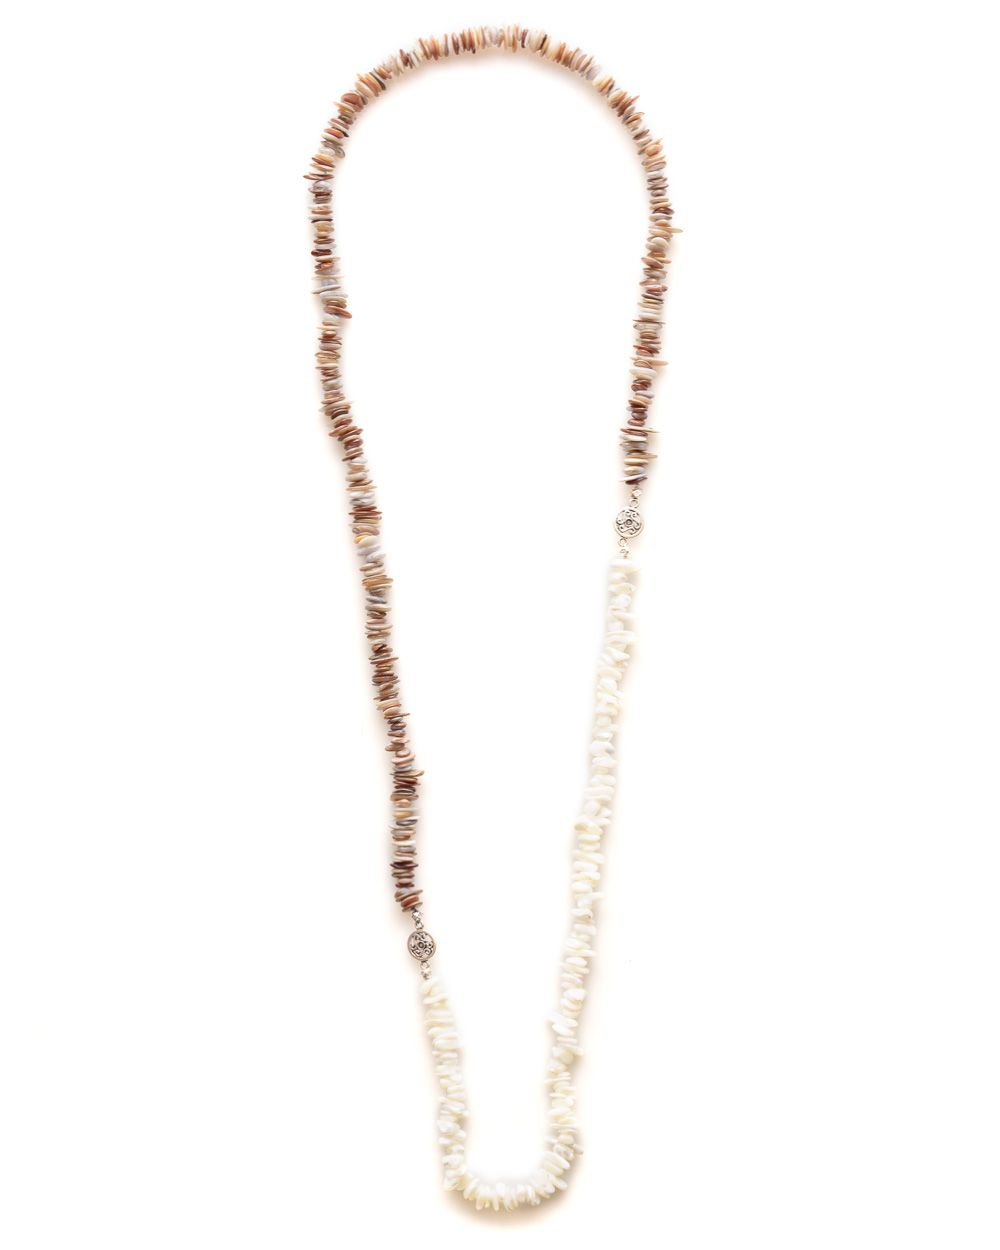 Ana neutral shell necklace